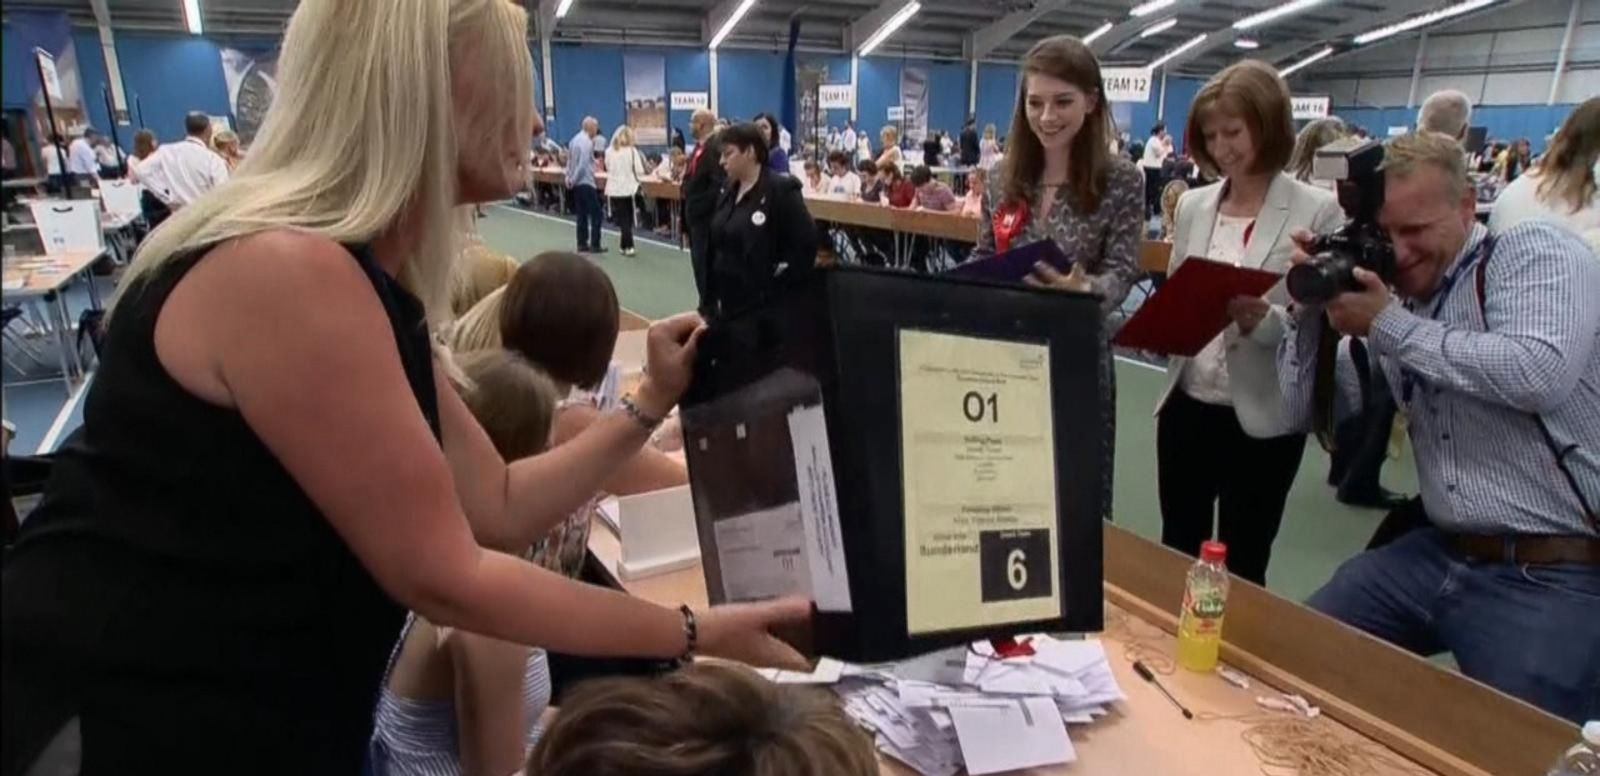 Brexit Wins as the UK Votes to Leave EU in Historic Referendum